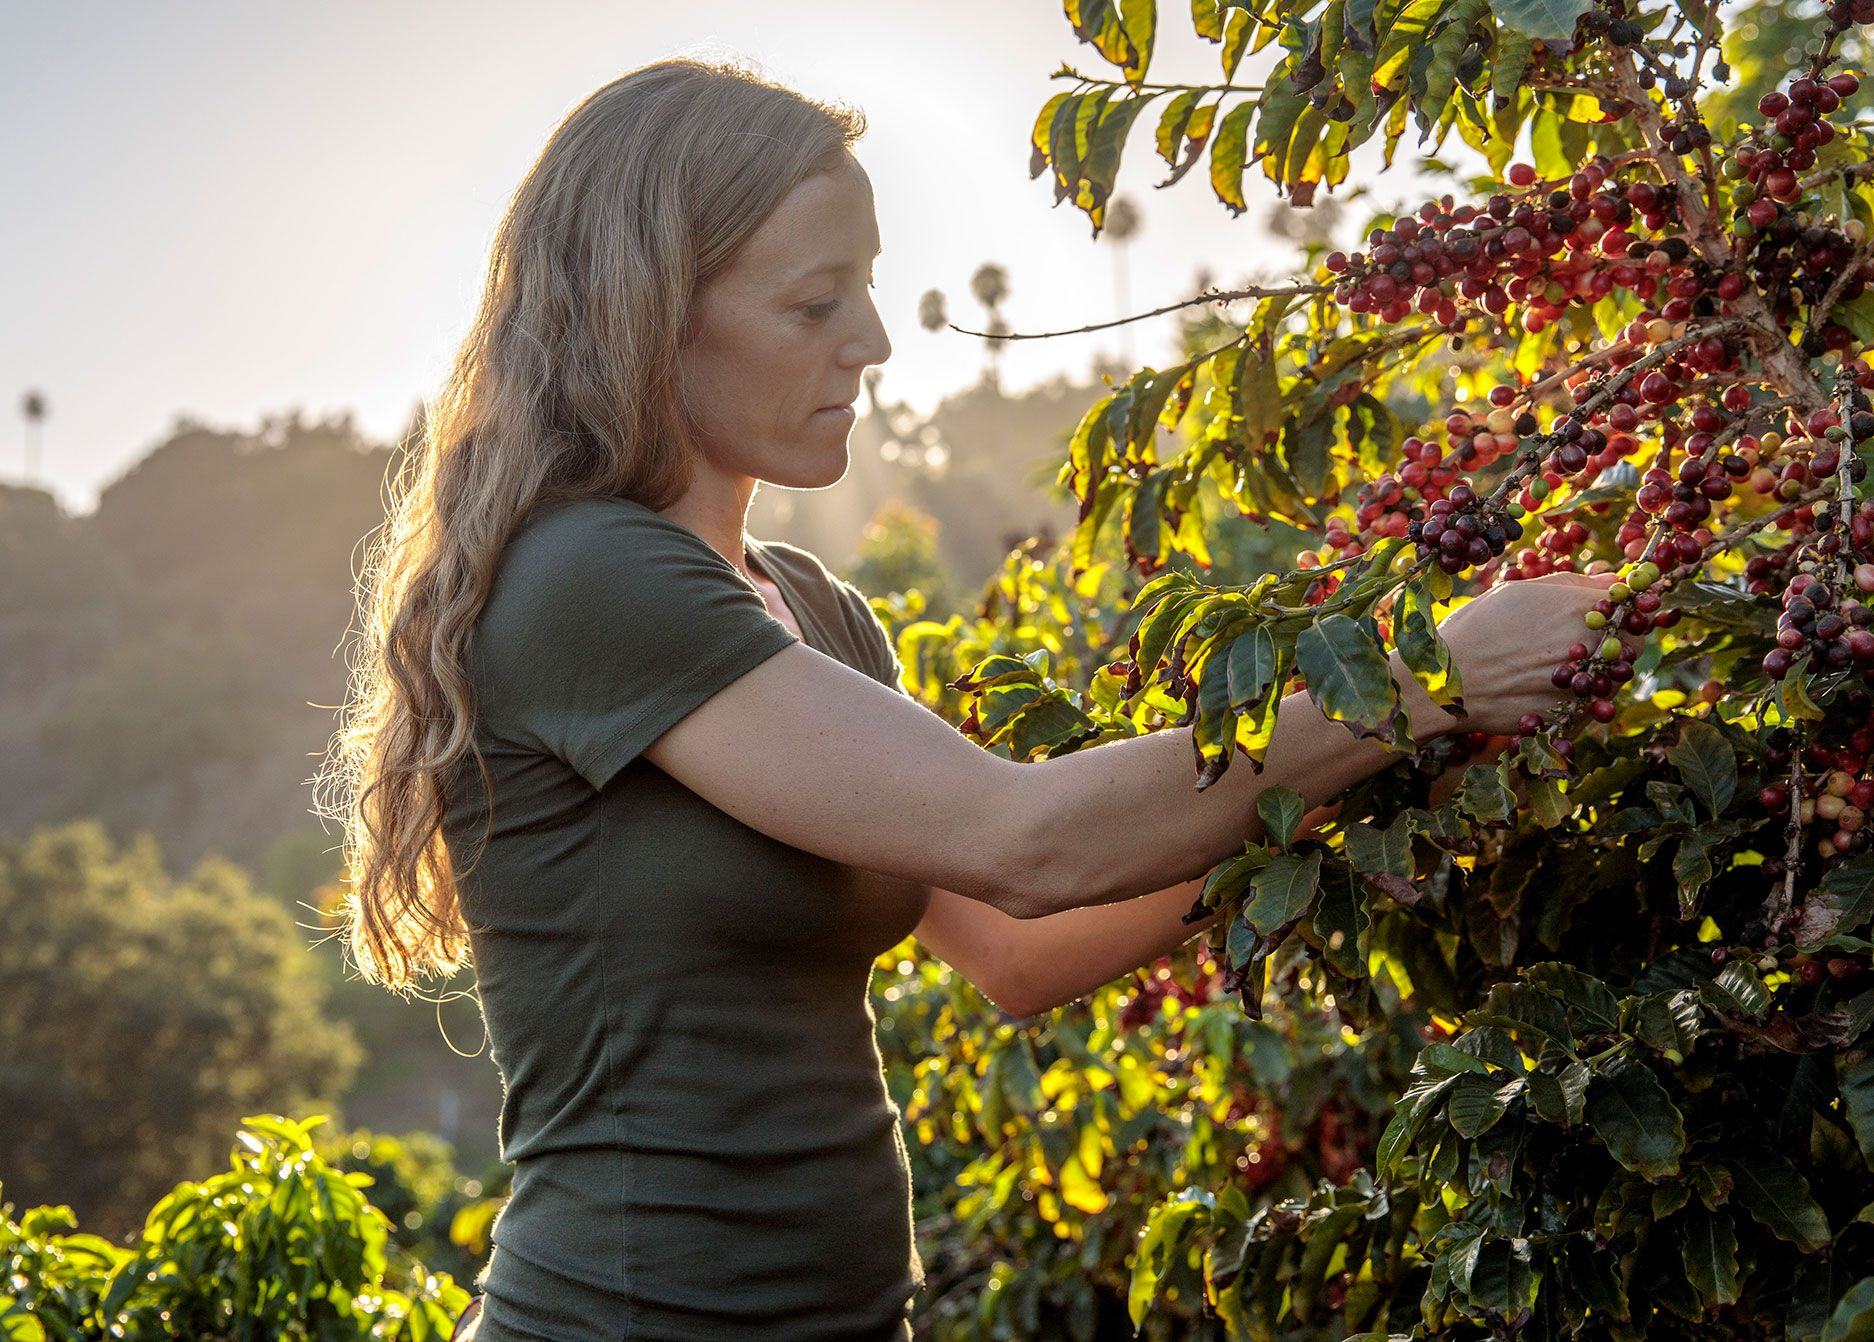 Lindsey Mesta, Frinj's co-founder and chief marketing officer, examines coffee beans on the firms' bushes.